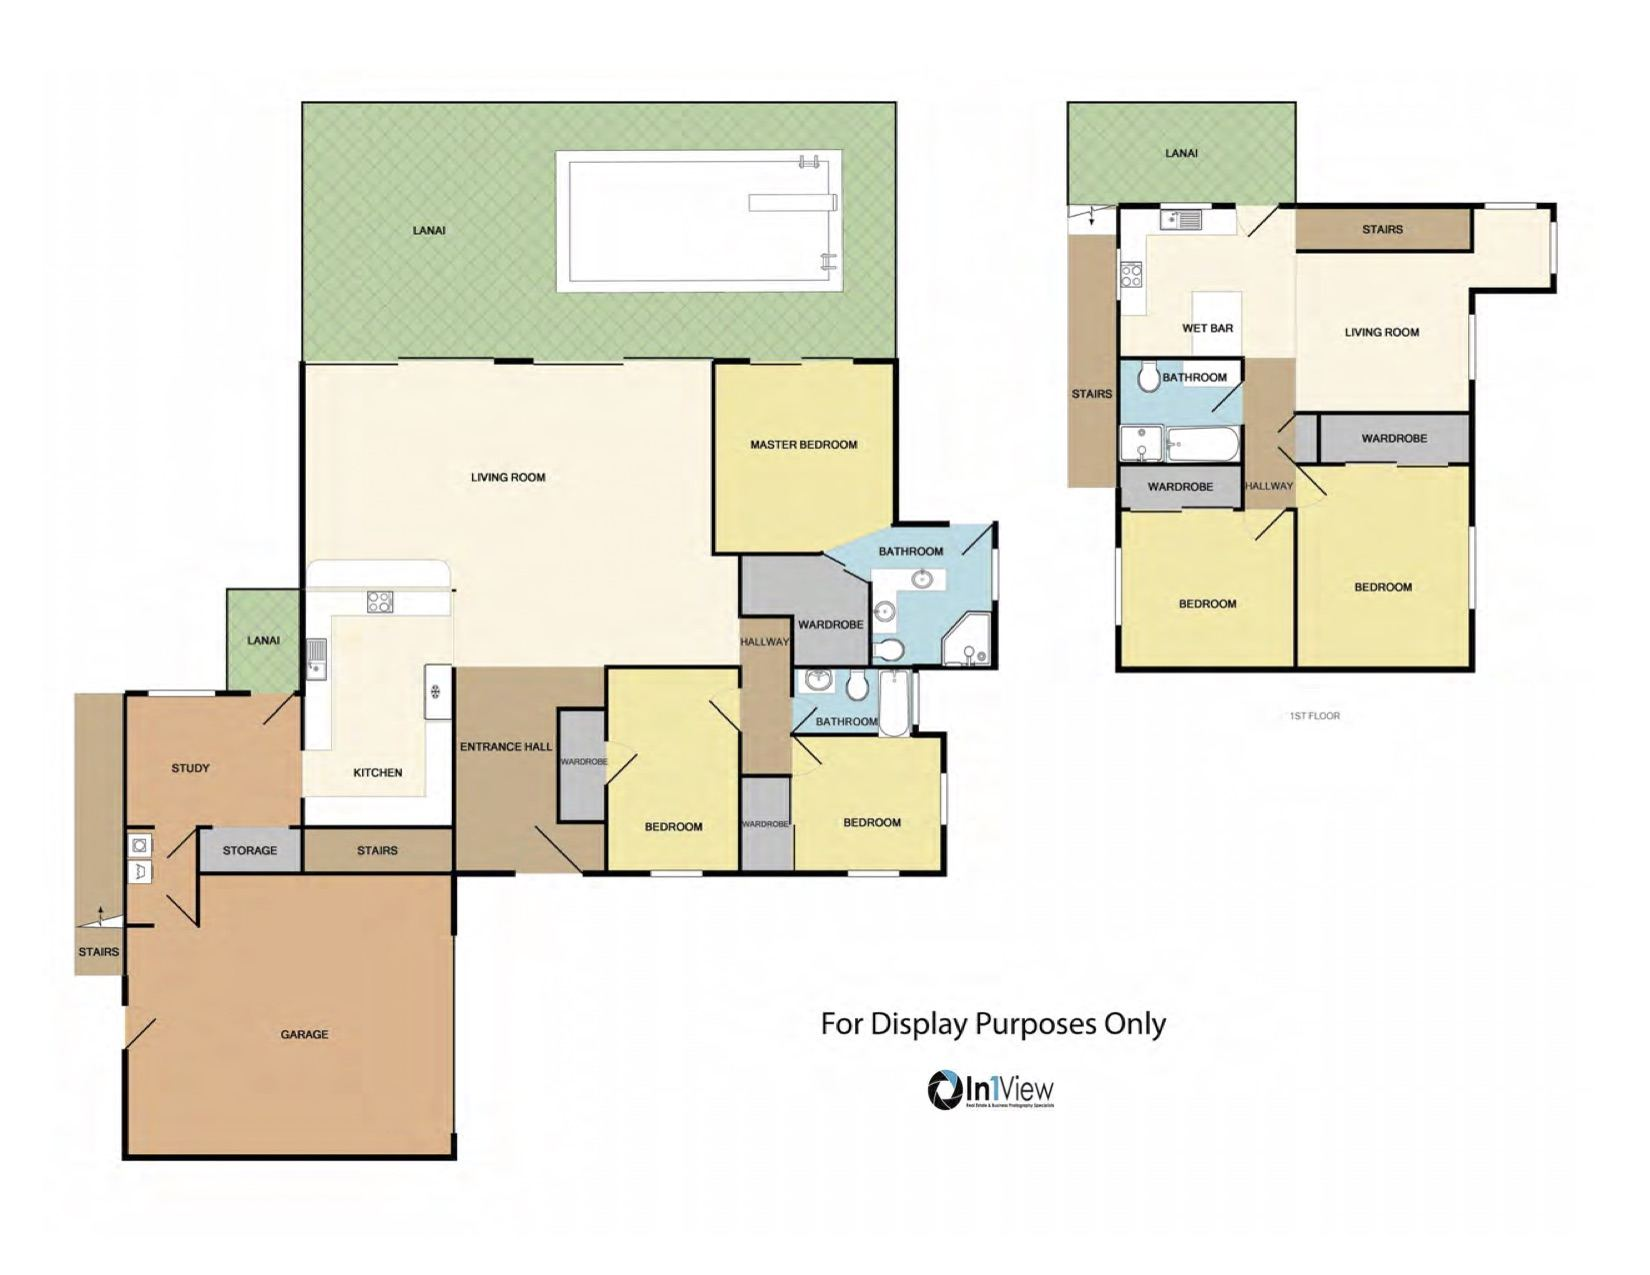 590 Iana floor plan